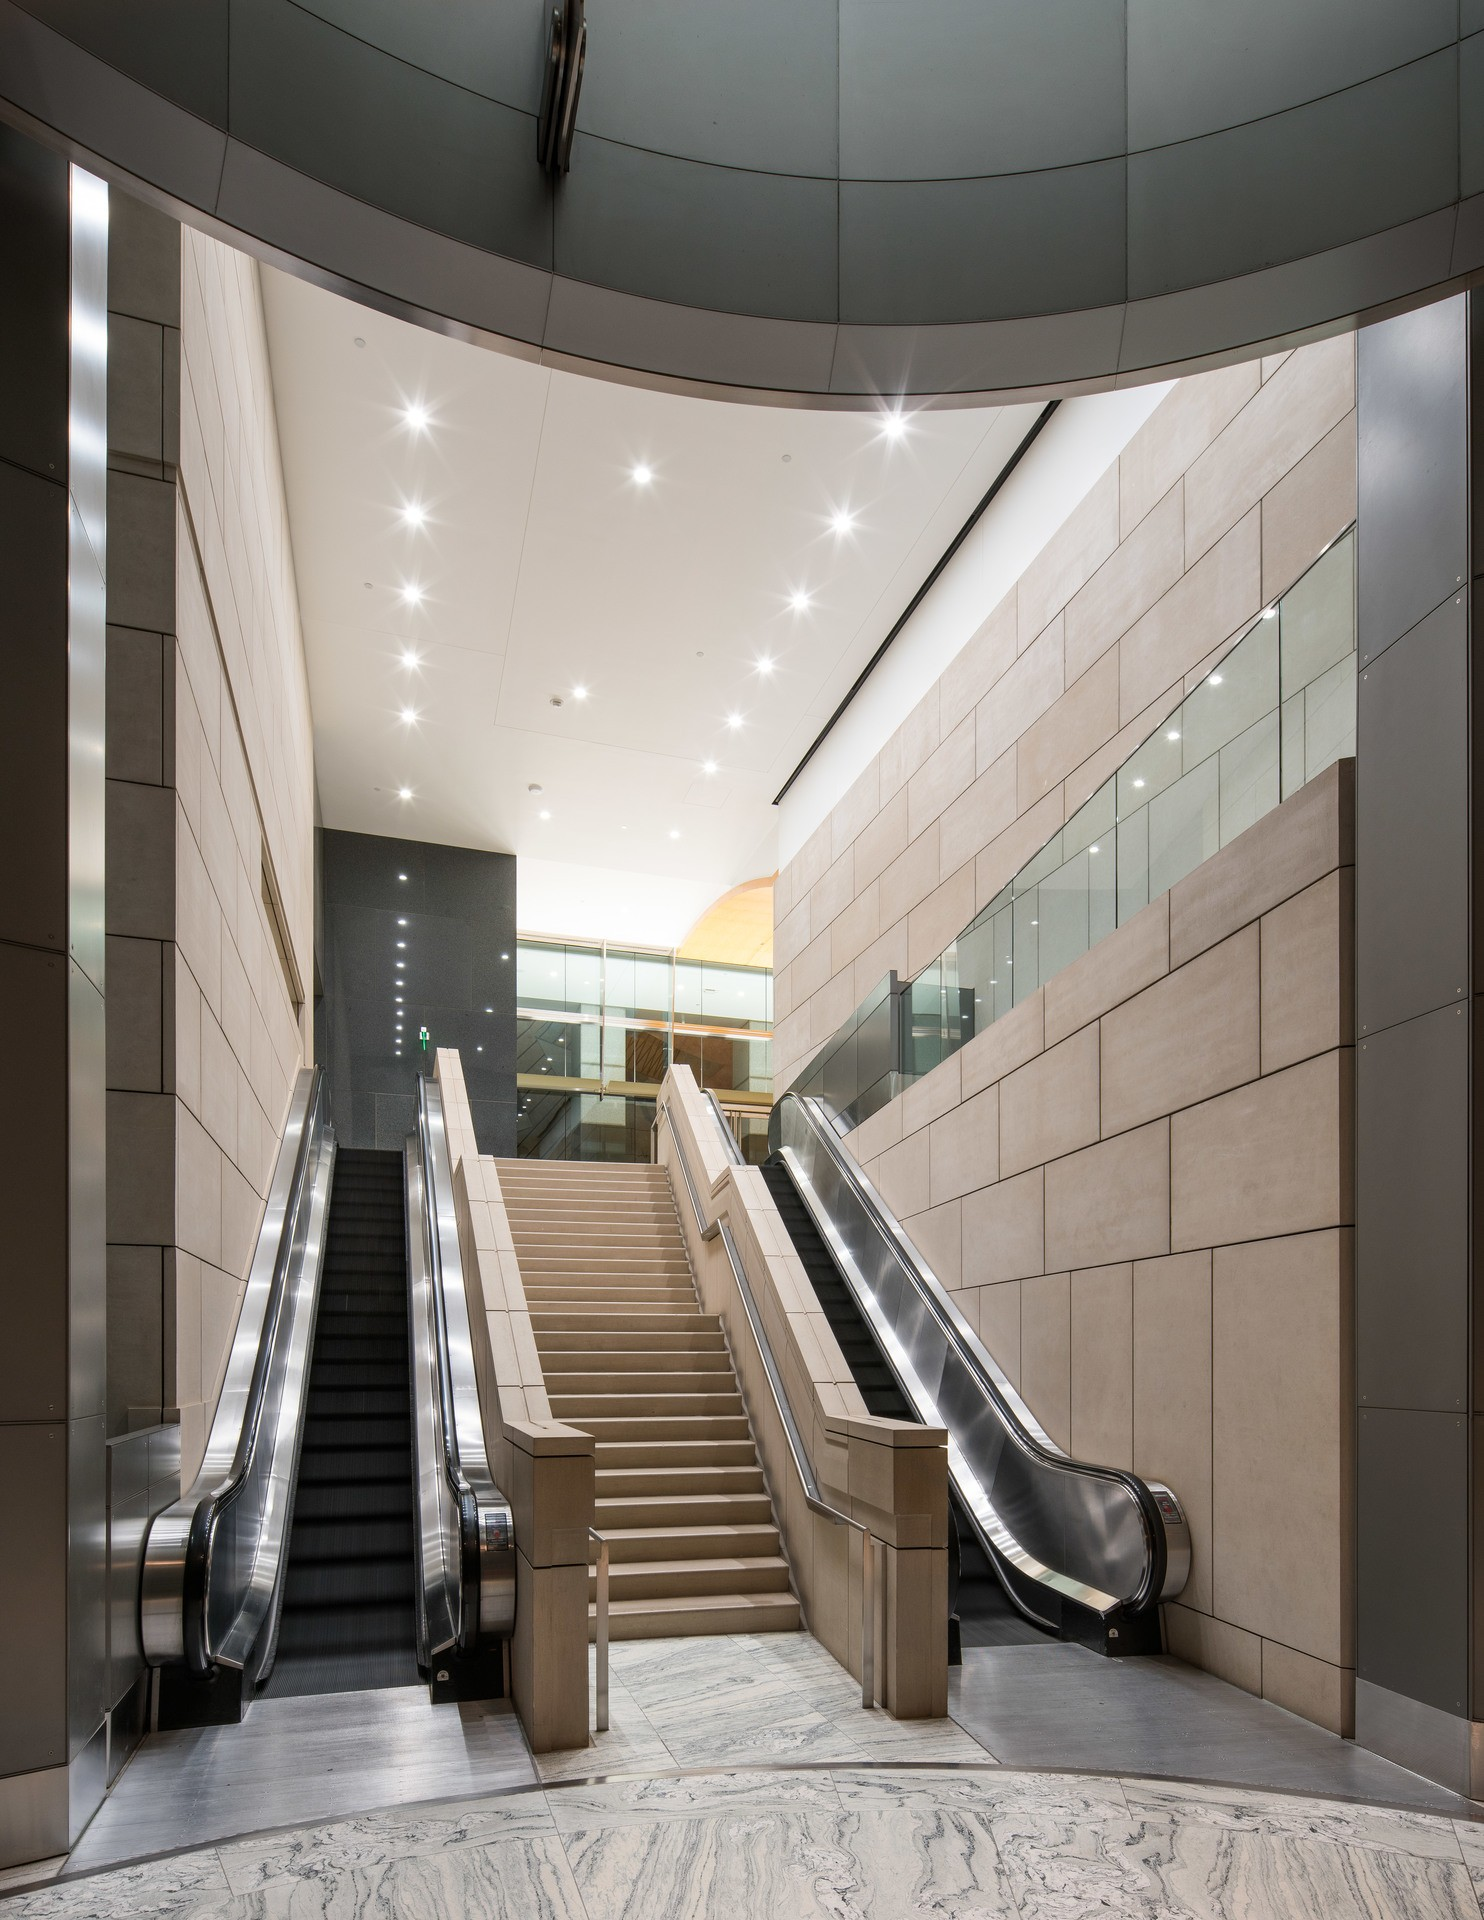 An escalator that connects two floors of the building.